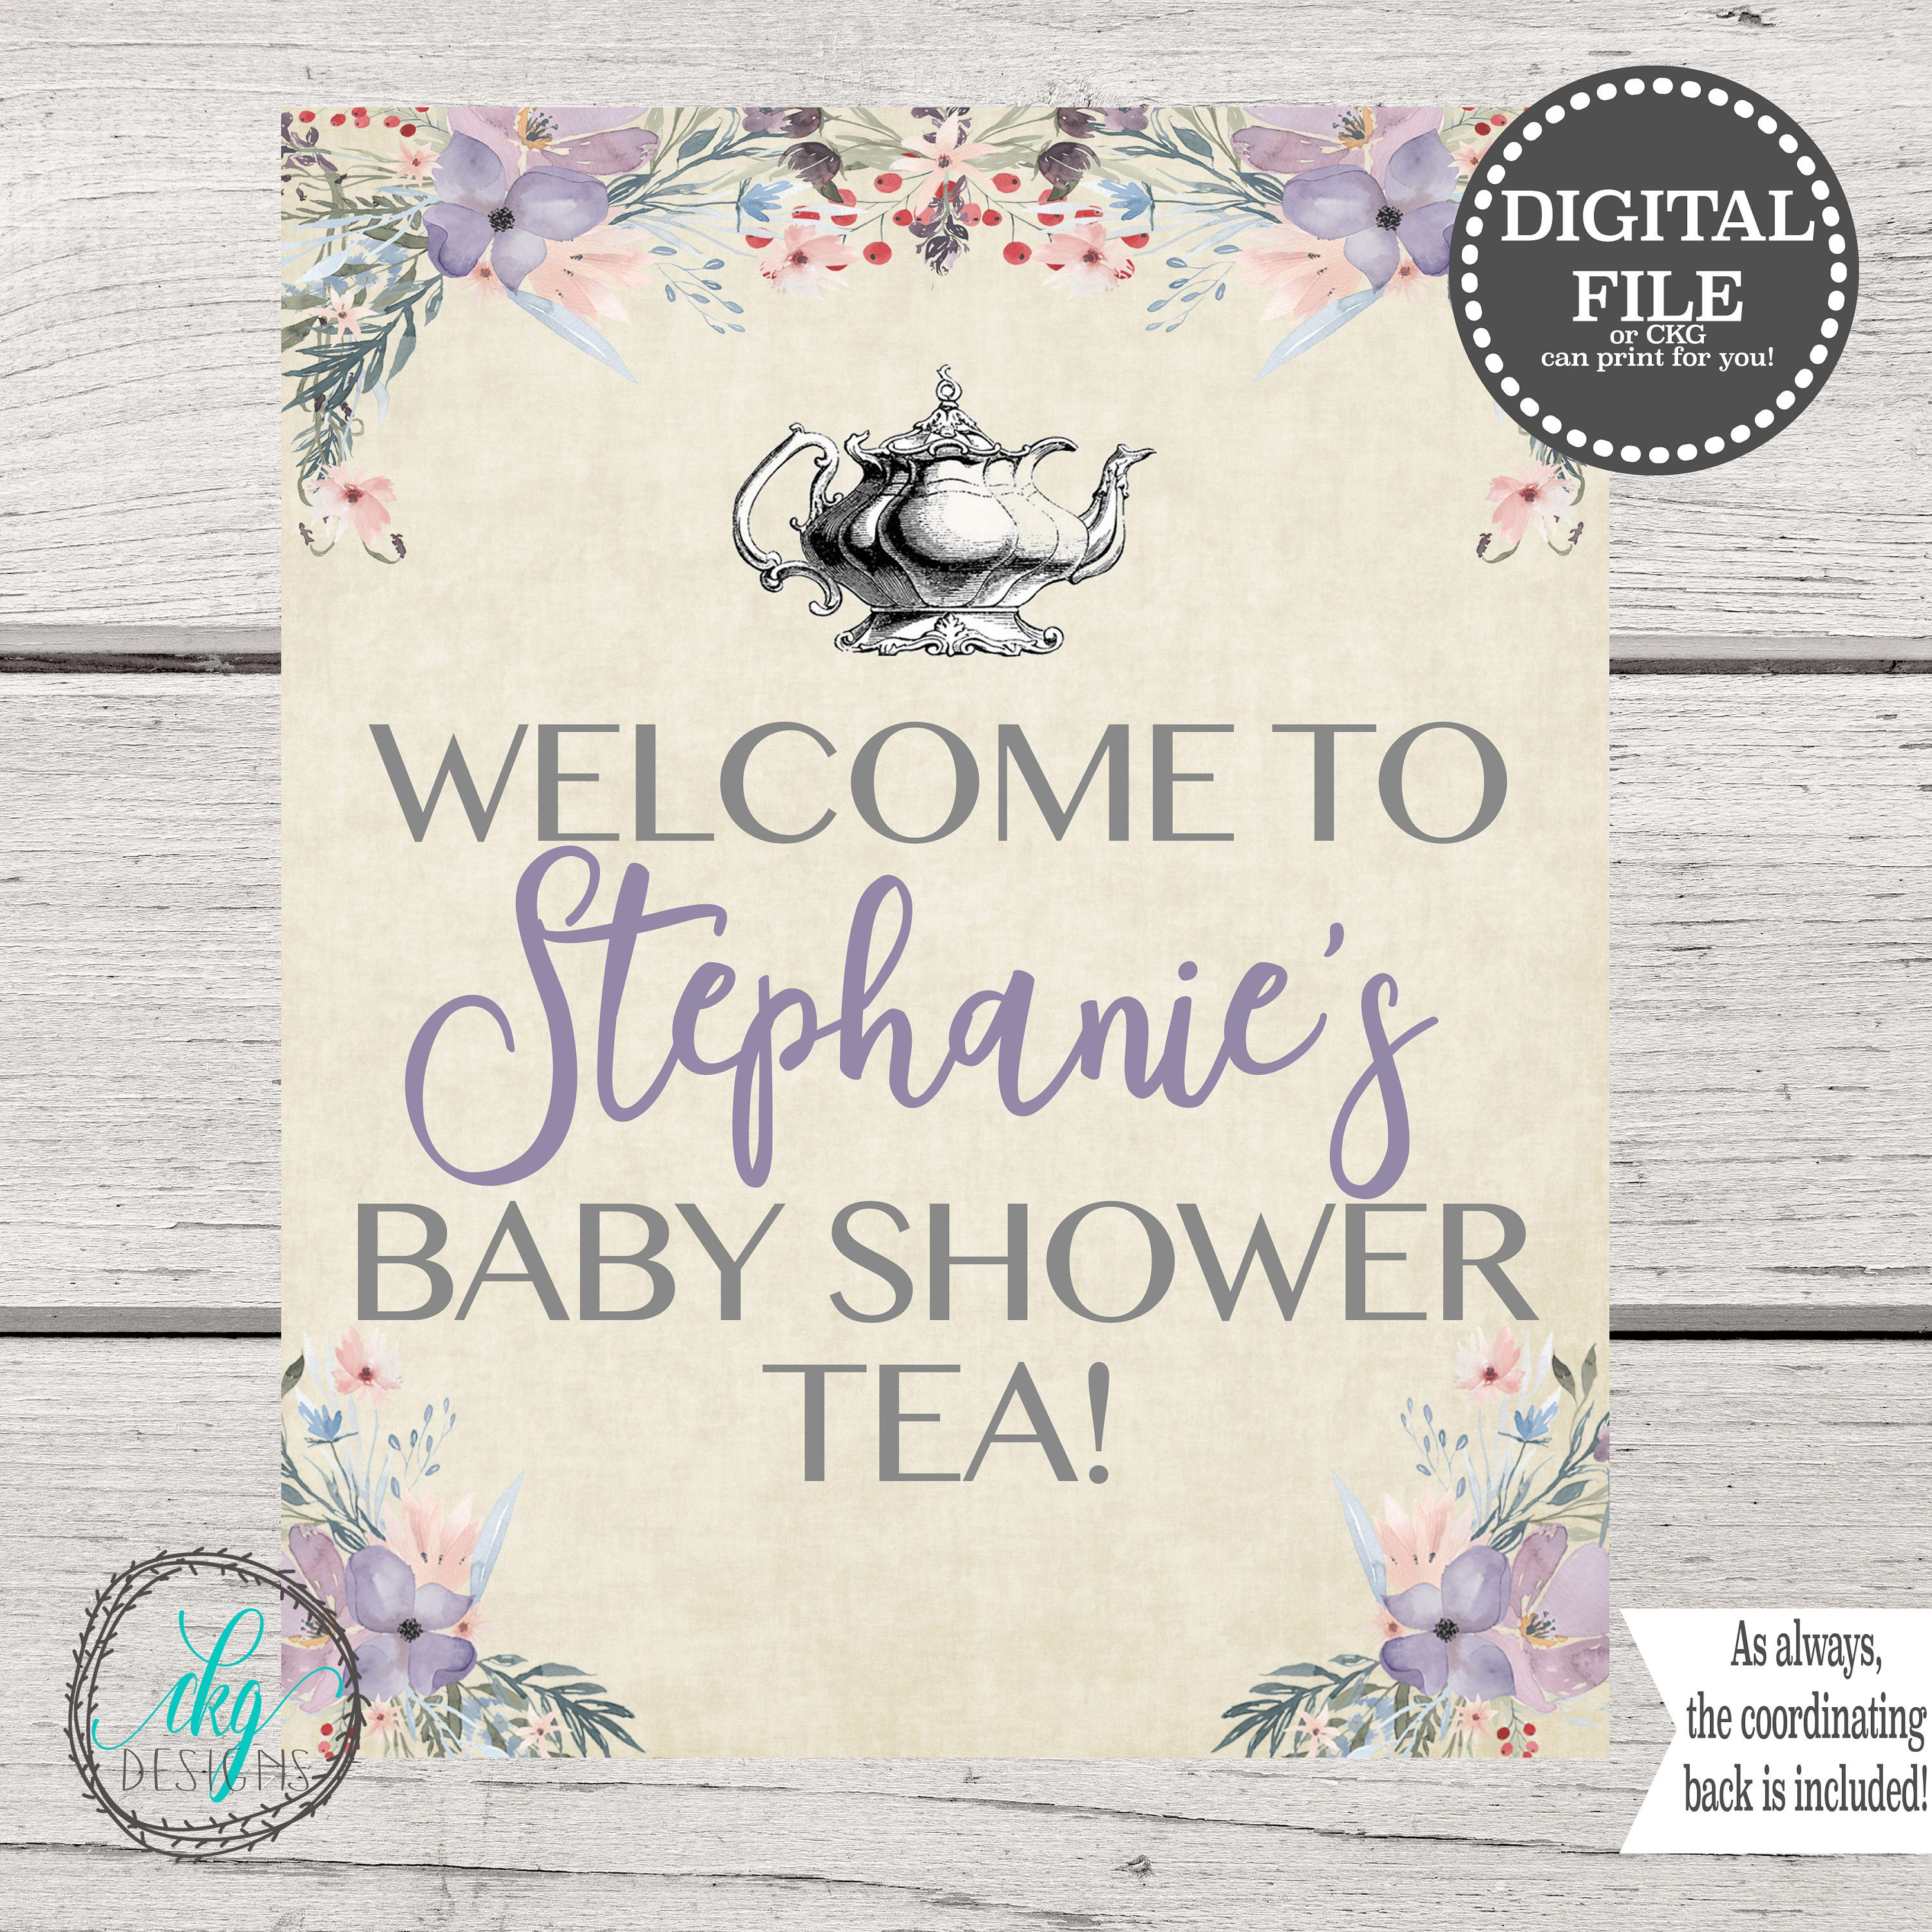 Baby Shower Tea Party Signs Baby Shower Tea Party Welcome to | Etsy